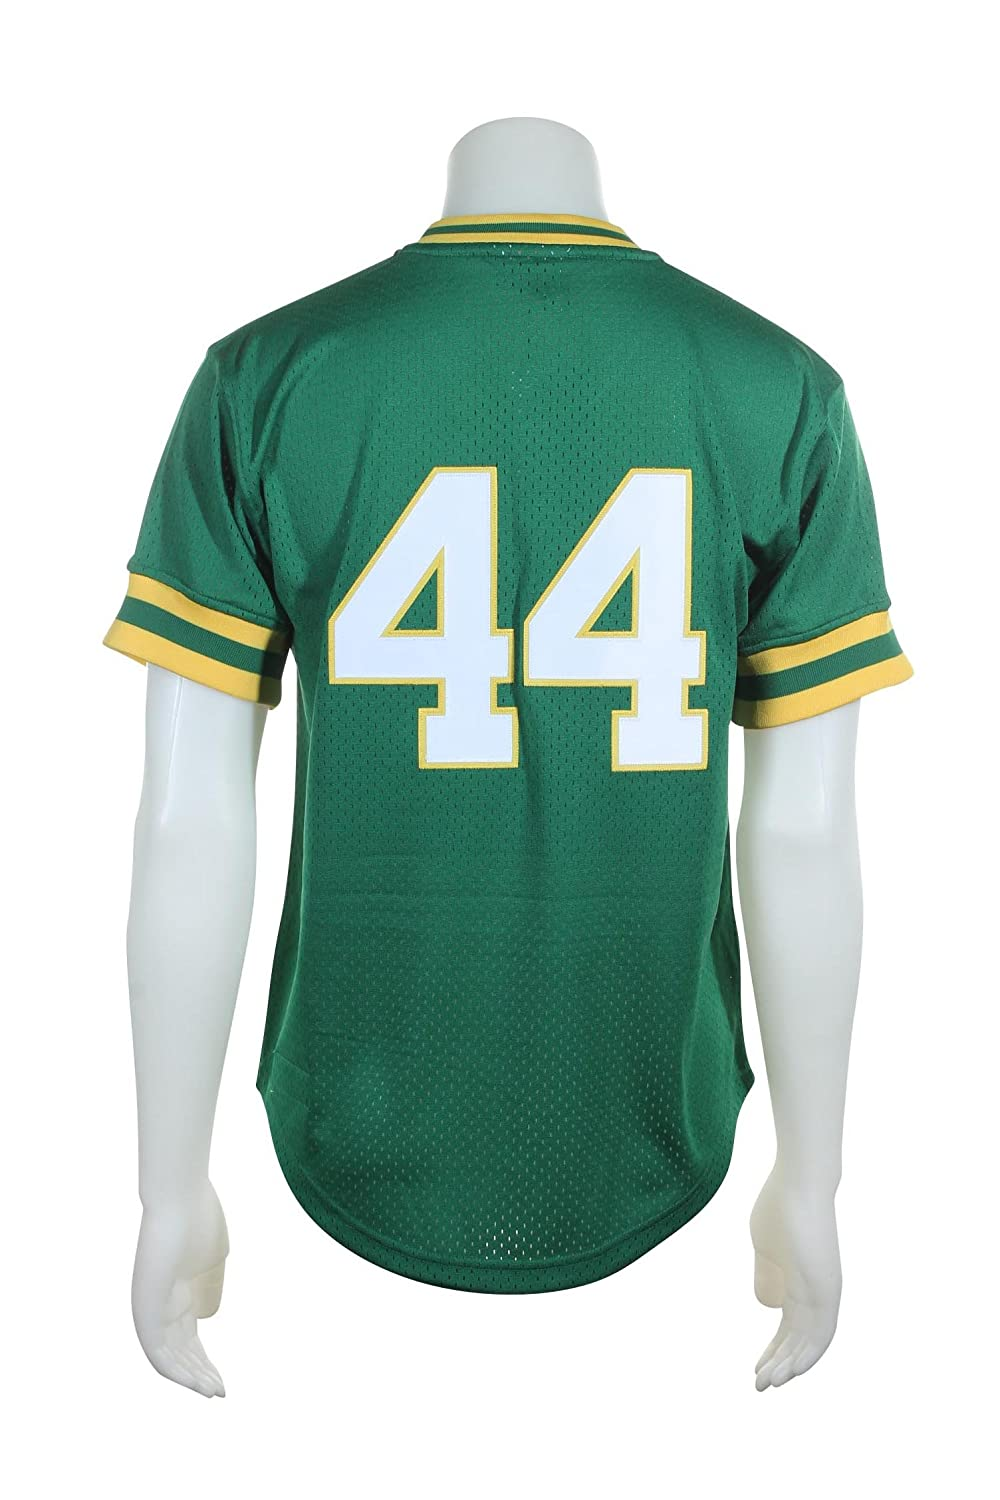 2dc8f4e15 Amazon.com   Mitchell   Ness Oakland Athletics Reggie Jackson Green 1987 Authentic  Batting Practice Jersey   Polo Shirts   Sports   Outdoors